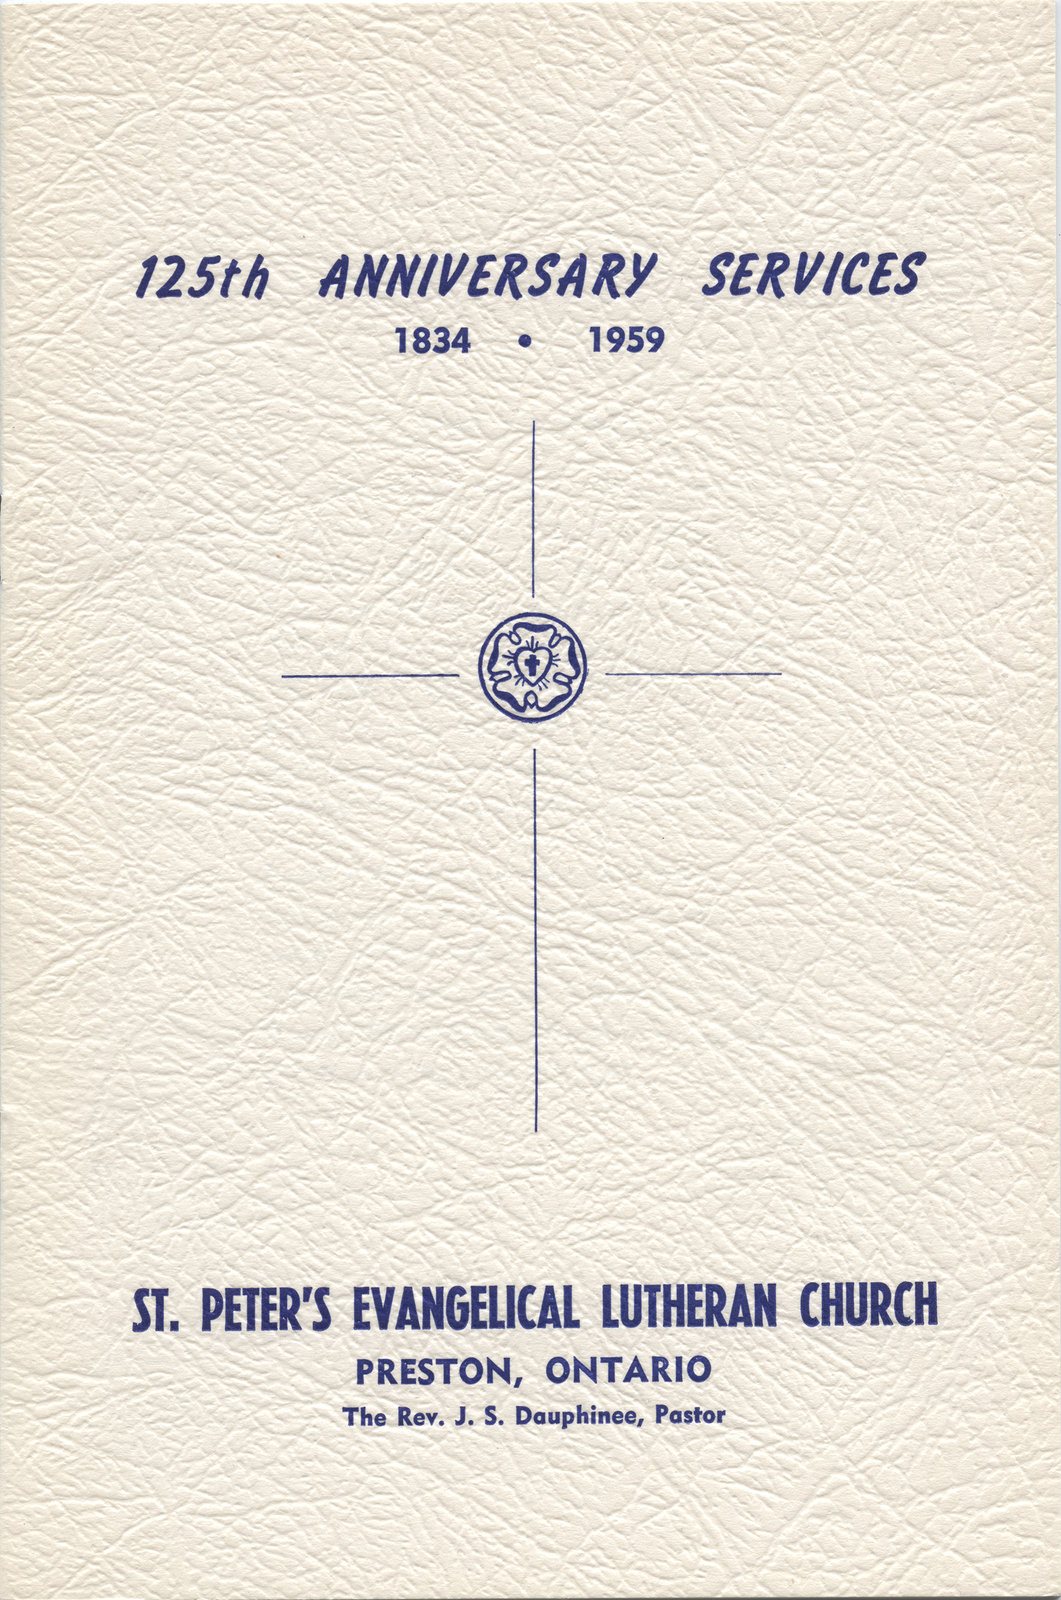 125th Anniversary services, St. Peter's Evangelical Lutheran Church, Preston, Ontario